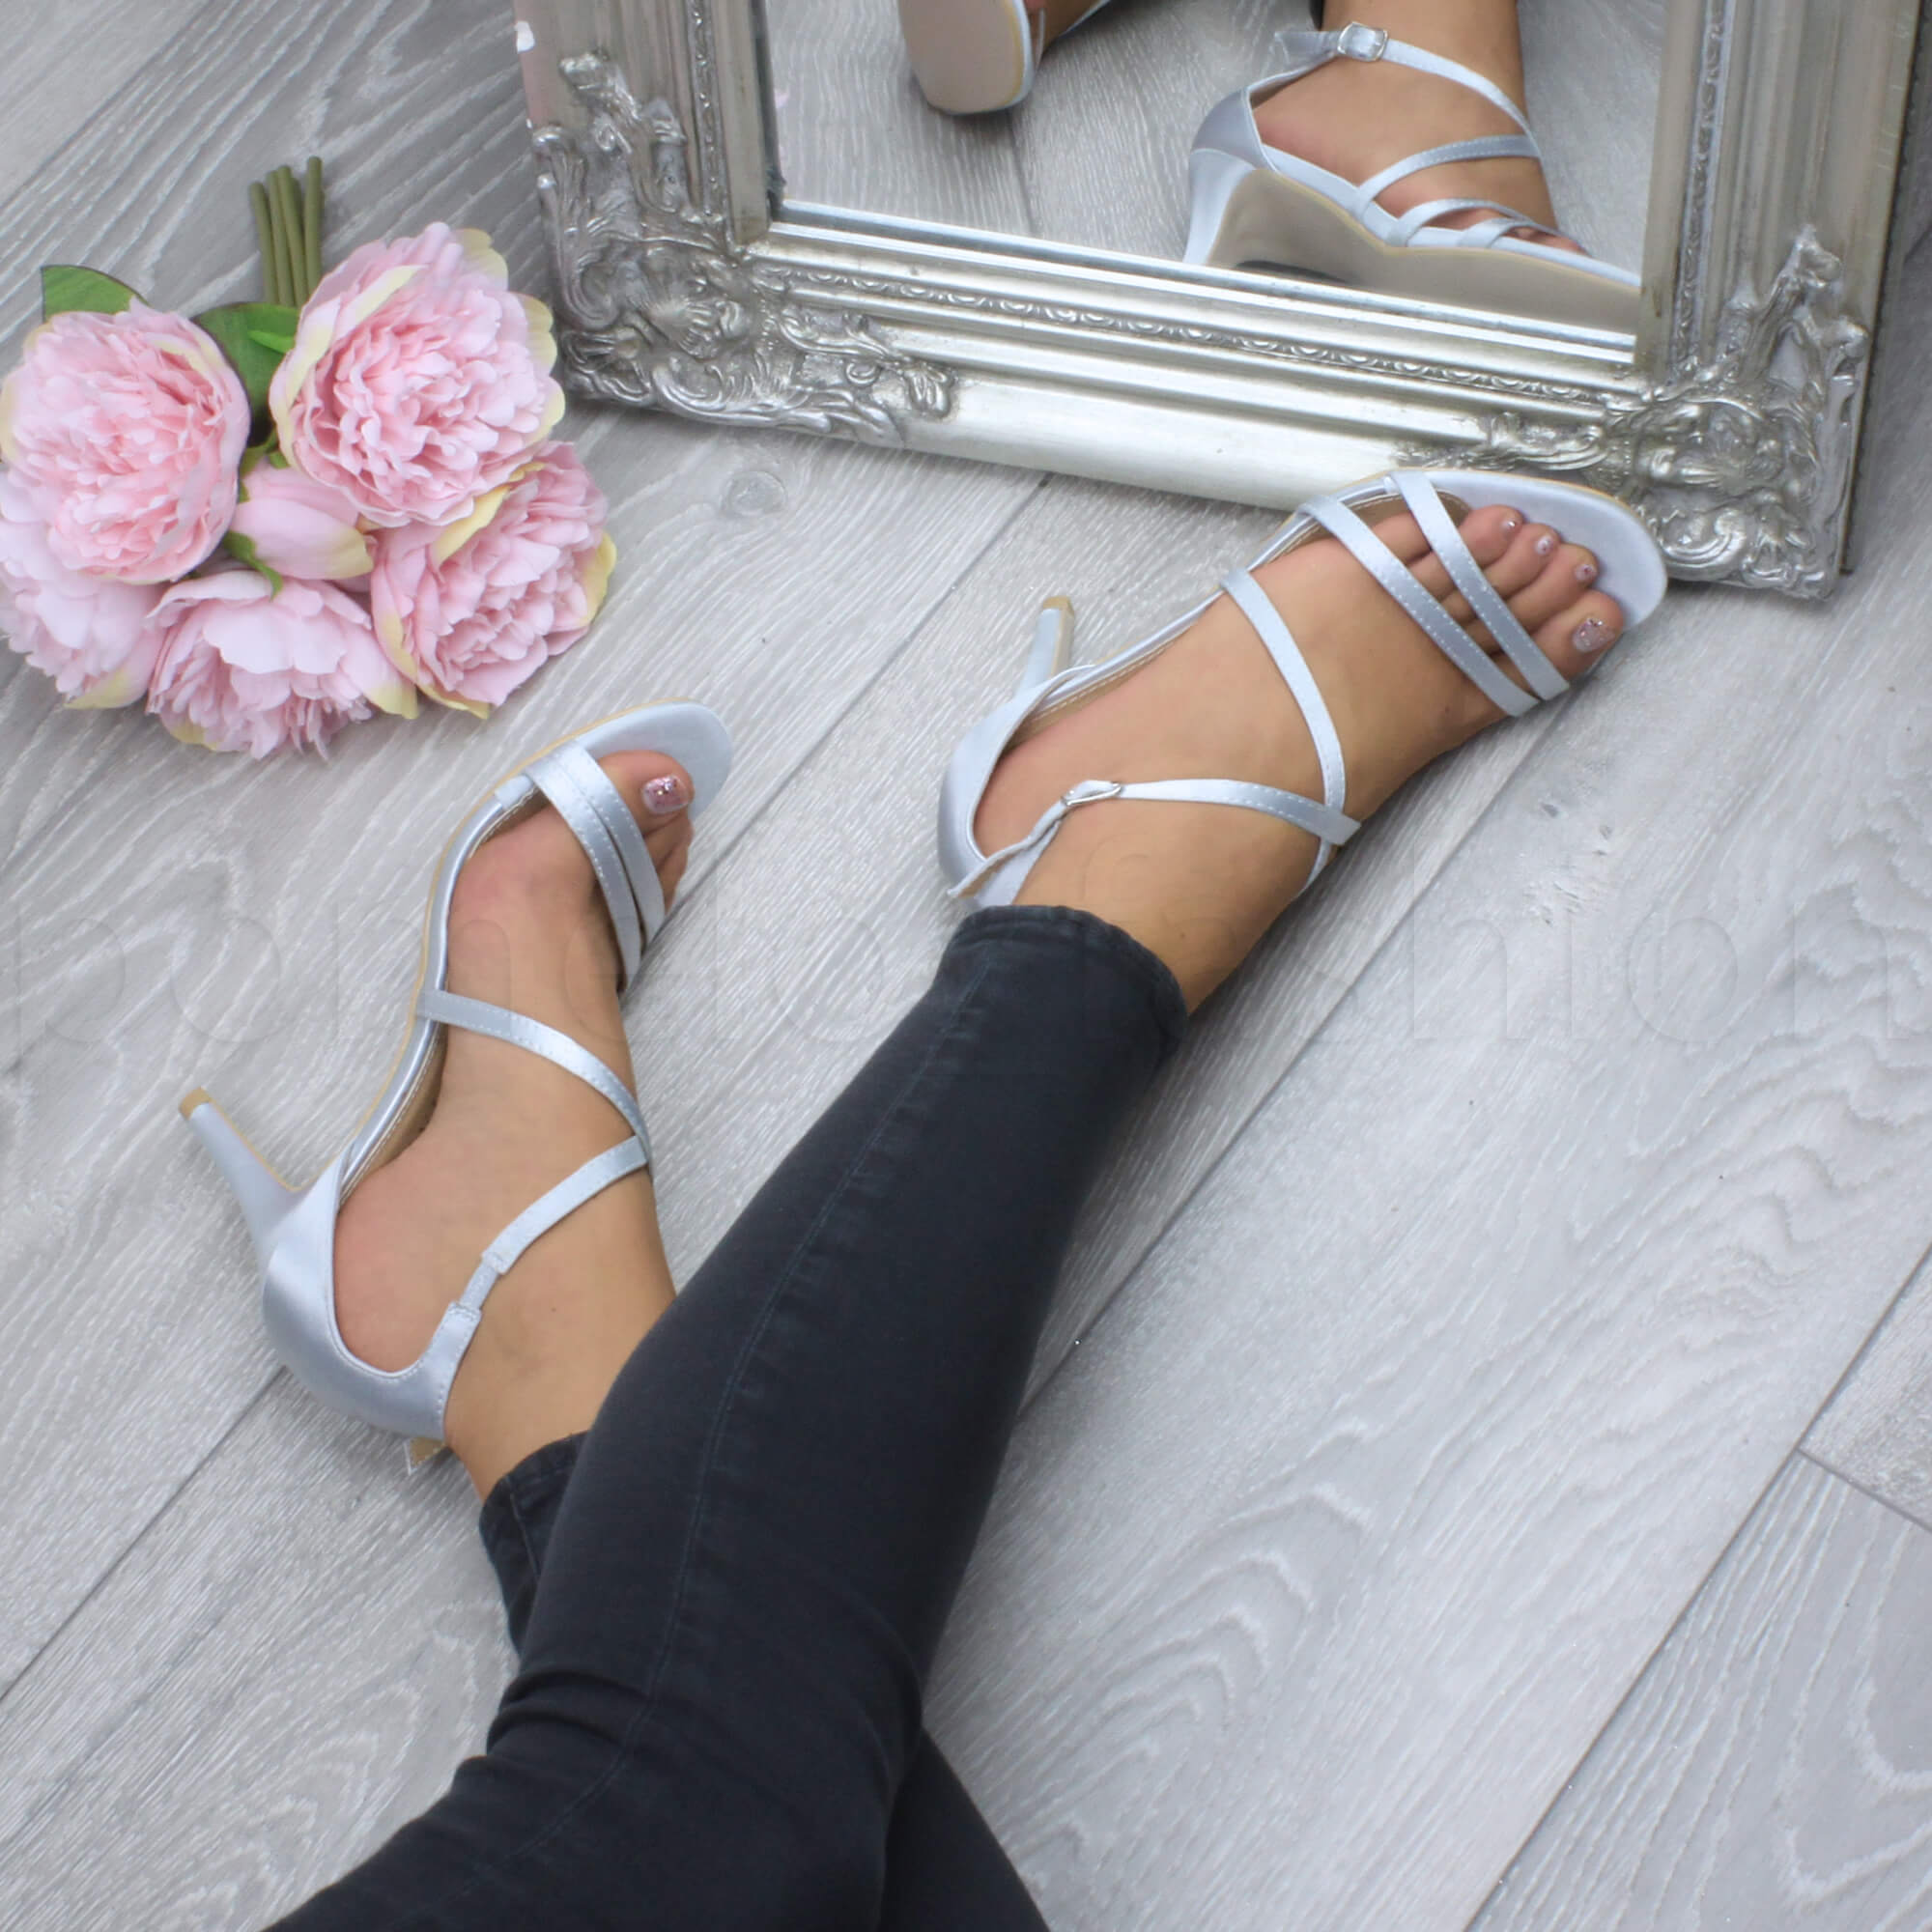 WOMENS LADIES STRAPPY CROSSOVER MID HIGH HEEL WEDDING BRIDESMAID SANDALS  SIZE Picture 2 of 7